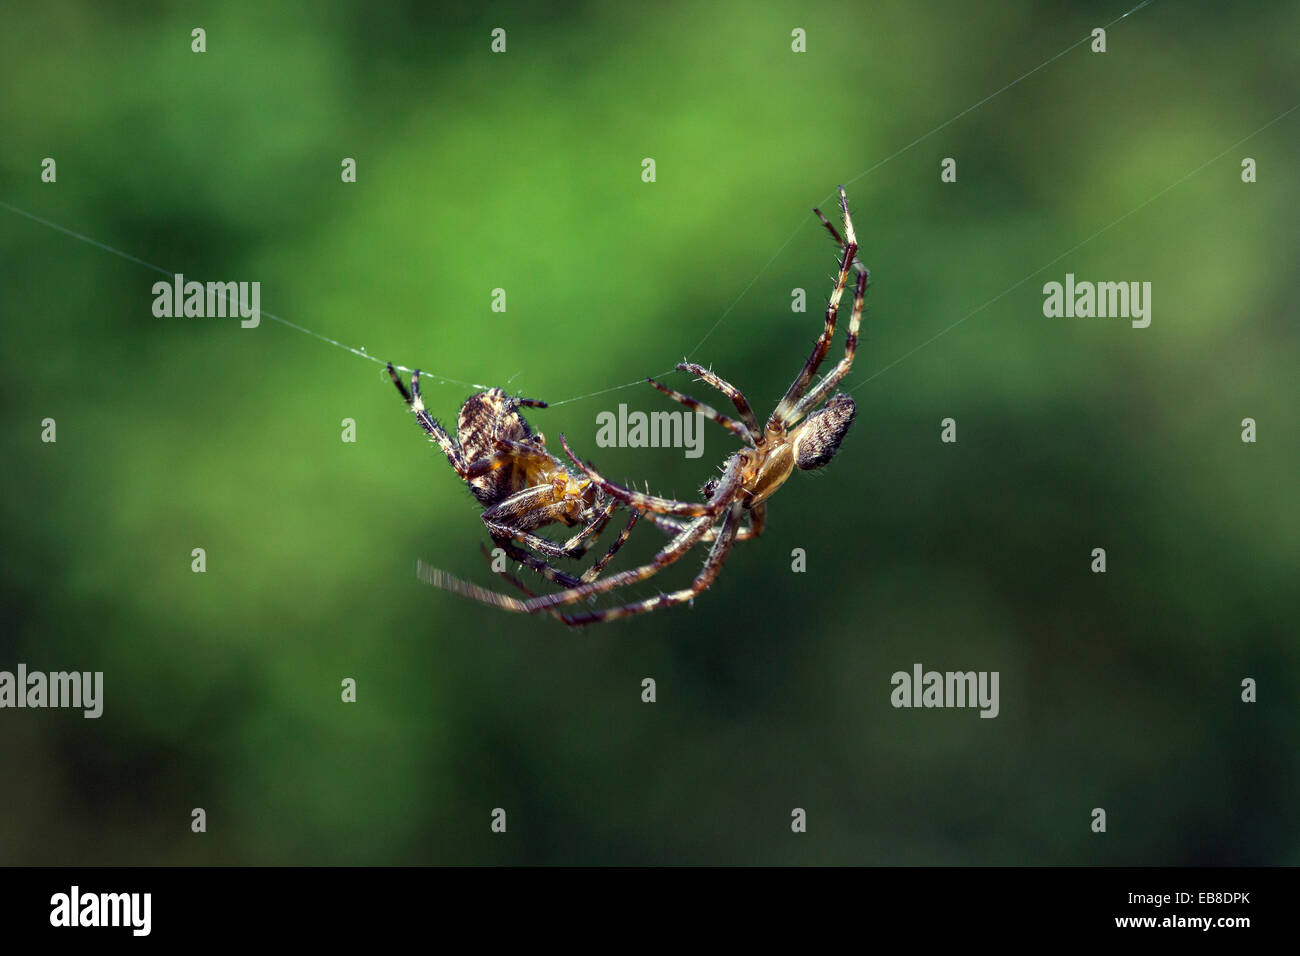 European garden spiders / diadem spider / cross spider / cross orbweaver (Araneus diadematus), courting male approaching - Stock Image